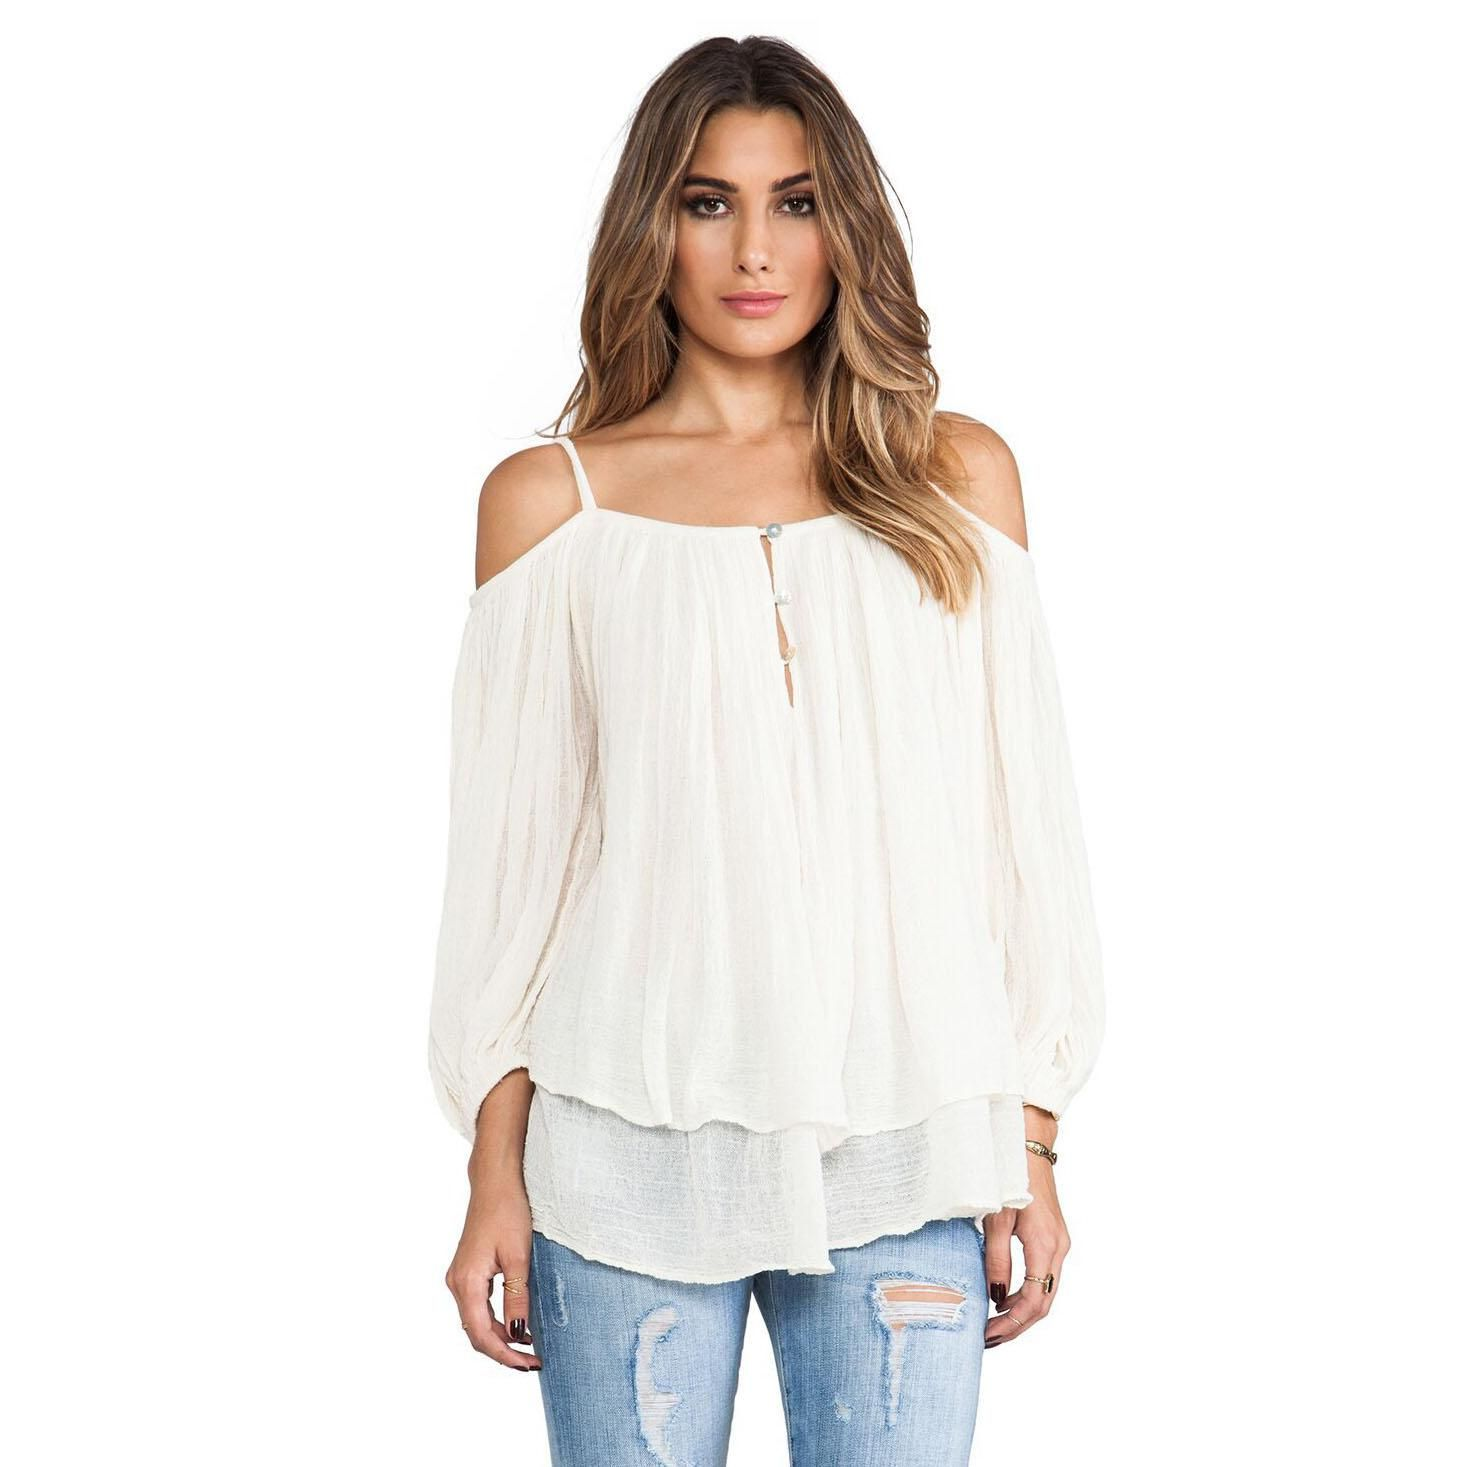 b3354bd1372491 White Long Sleeve Off The Shoulder Shirts - DREAMWORKS